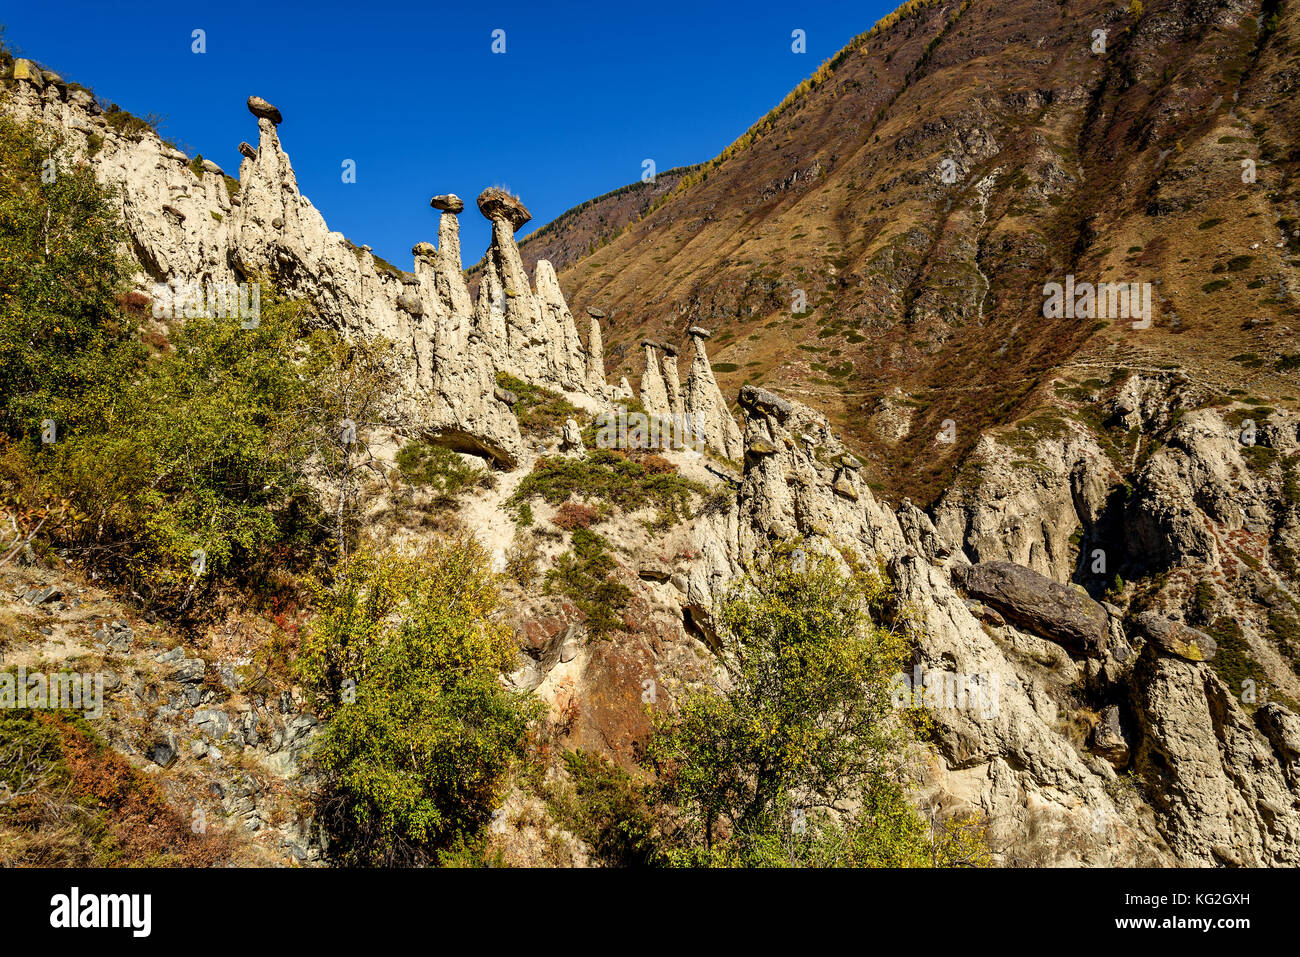 Scenic autumn view with high rocks in the form of stone mushrooms on a background of mountains and blue sky - Stock Image